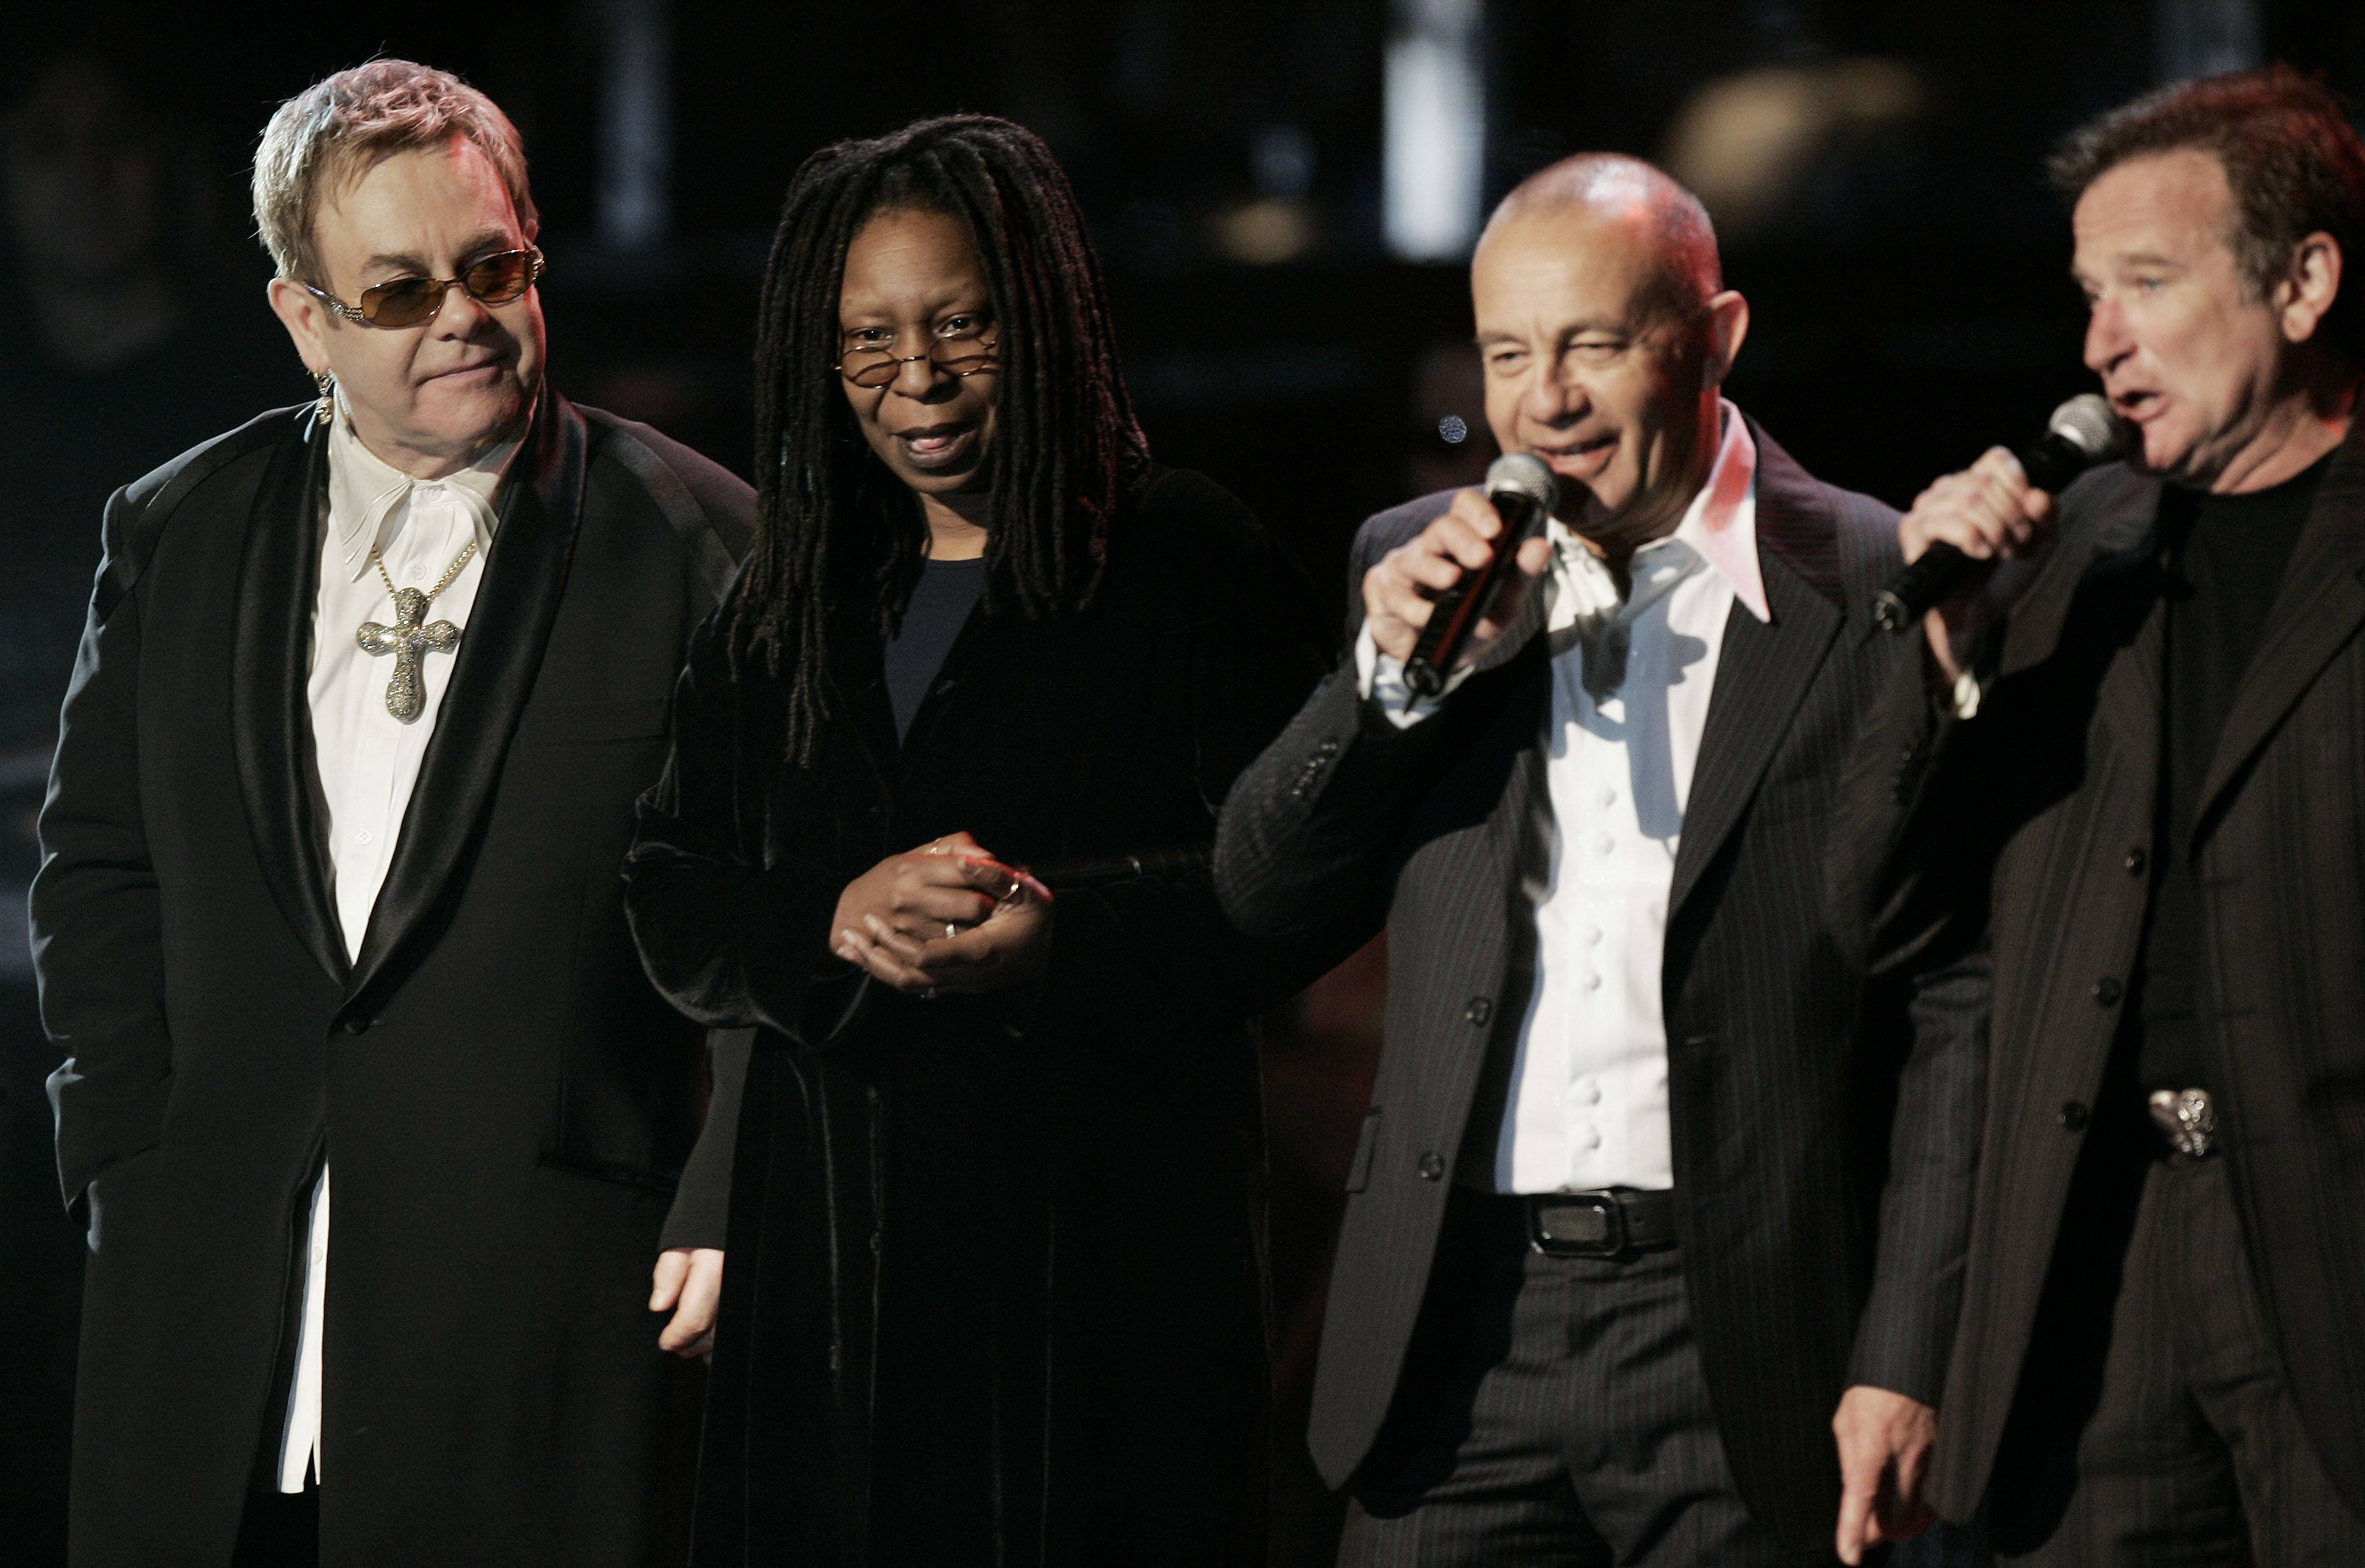 Musician Elton John, left to right, listens as Whoopi Goldberg, song writer Bernie Taupin, and comedian Robin Williams, pay tribute to him on stage March 25, 200 during John's concert in New York's Madison Square Garden,.